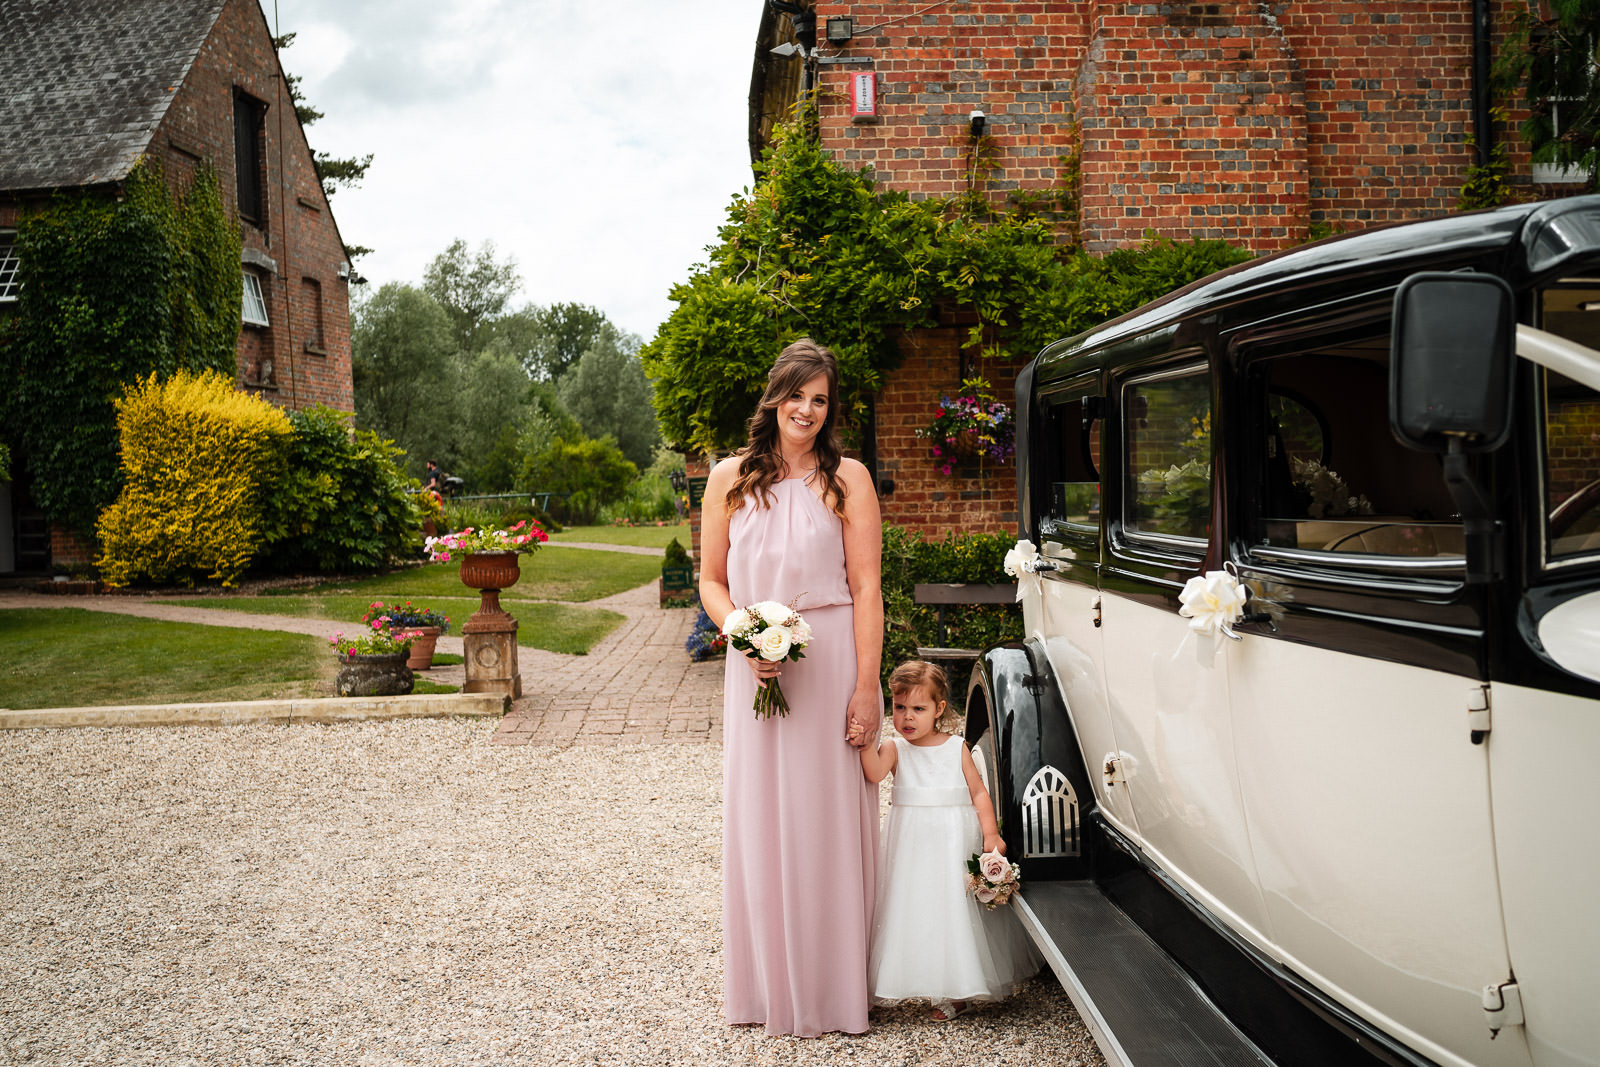 Emily Jonathan Wedding The Old Mill at The Old Mill Aldermaston on 06 July 2019.